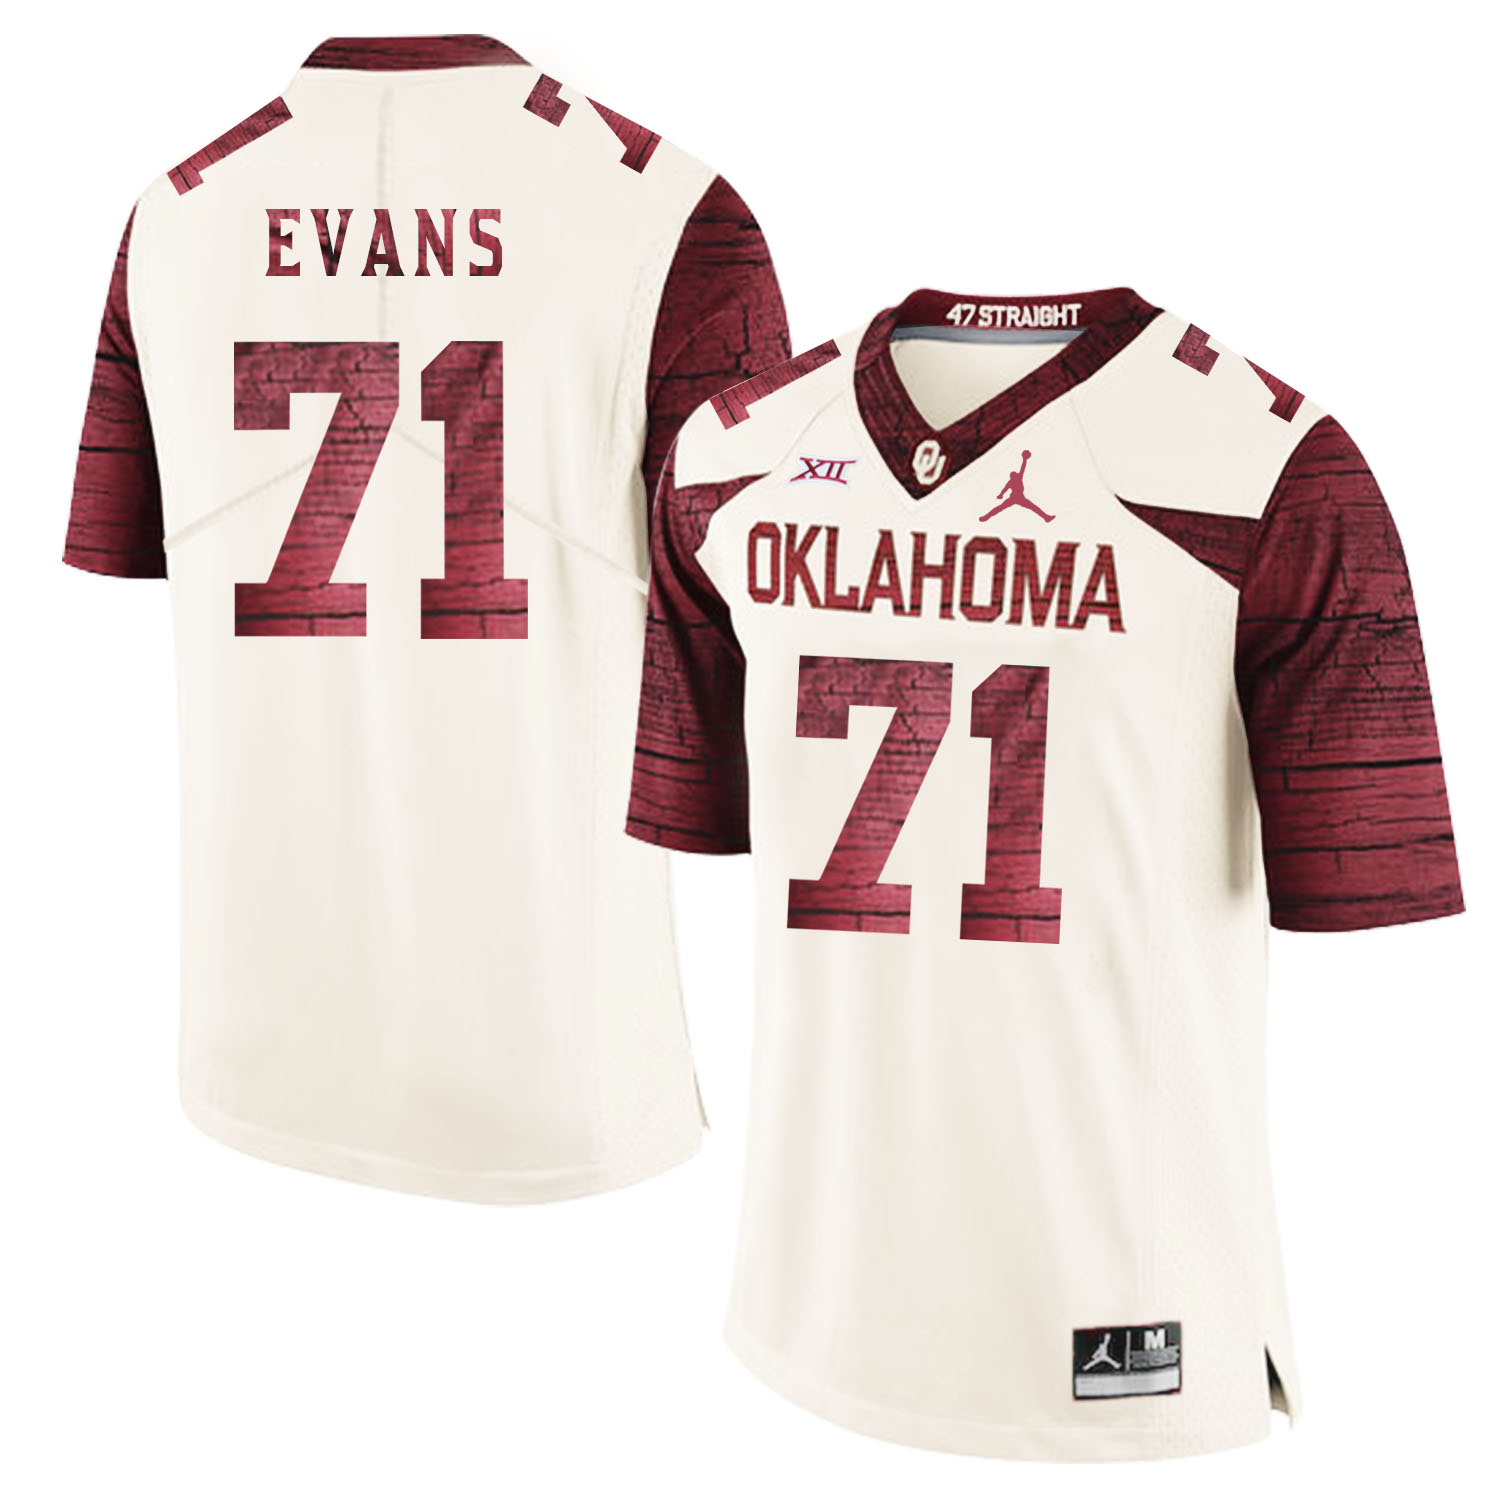 Oklahoma Sooners 71 Bobby Evans White 47 Game Winning Streak College Football Jersey